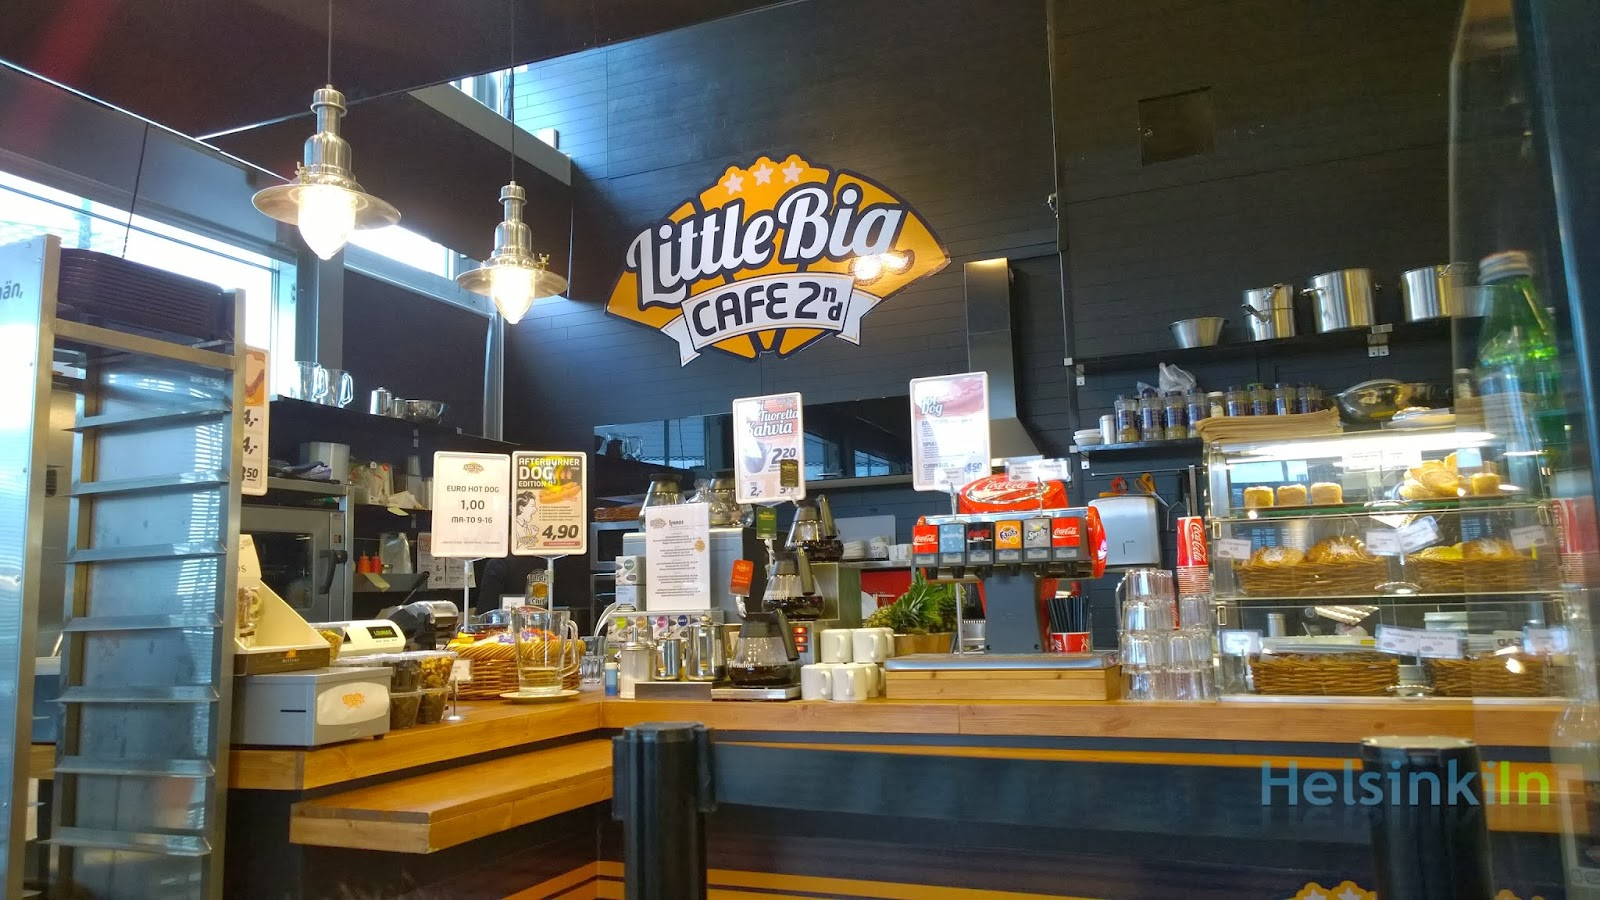 Little Big Cafe in Jätkäsaari